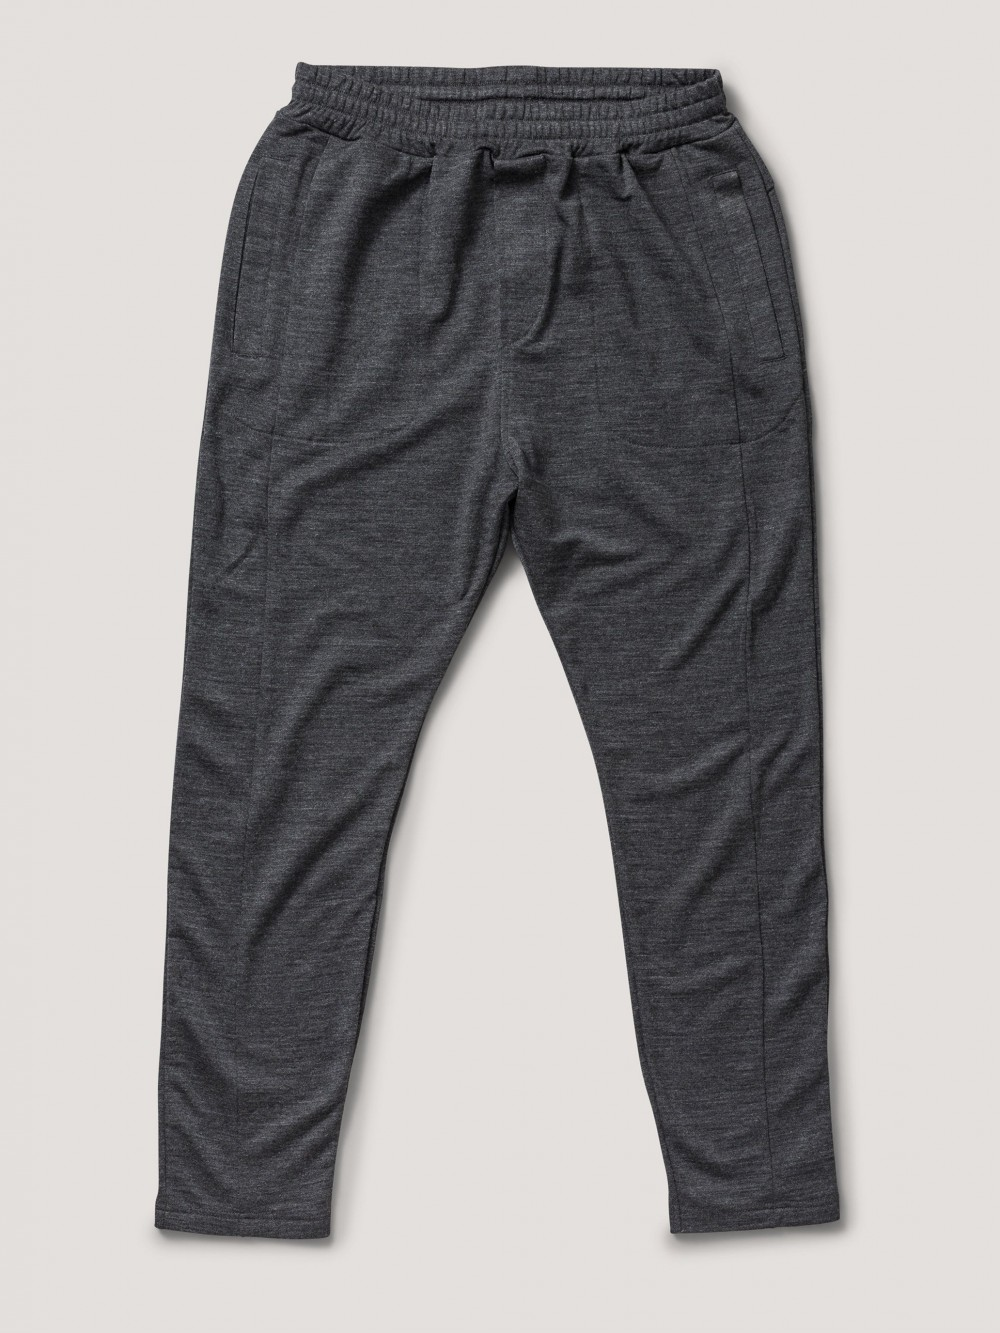 Sort  Base Wool Pant  Greater Than A  Joggebukser - Herreklær er billig